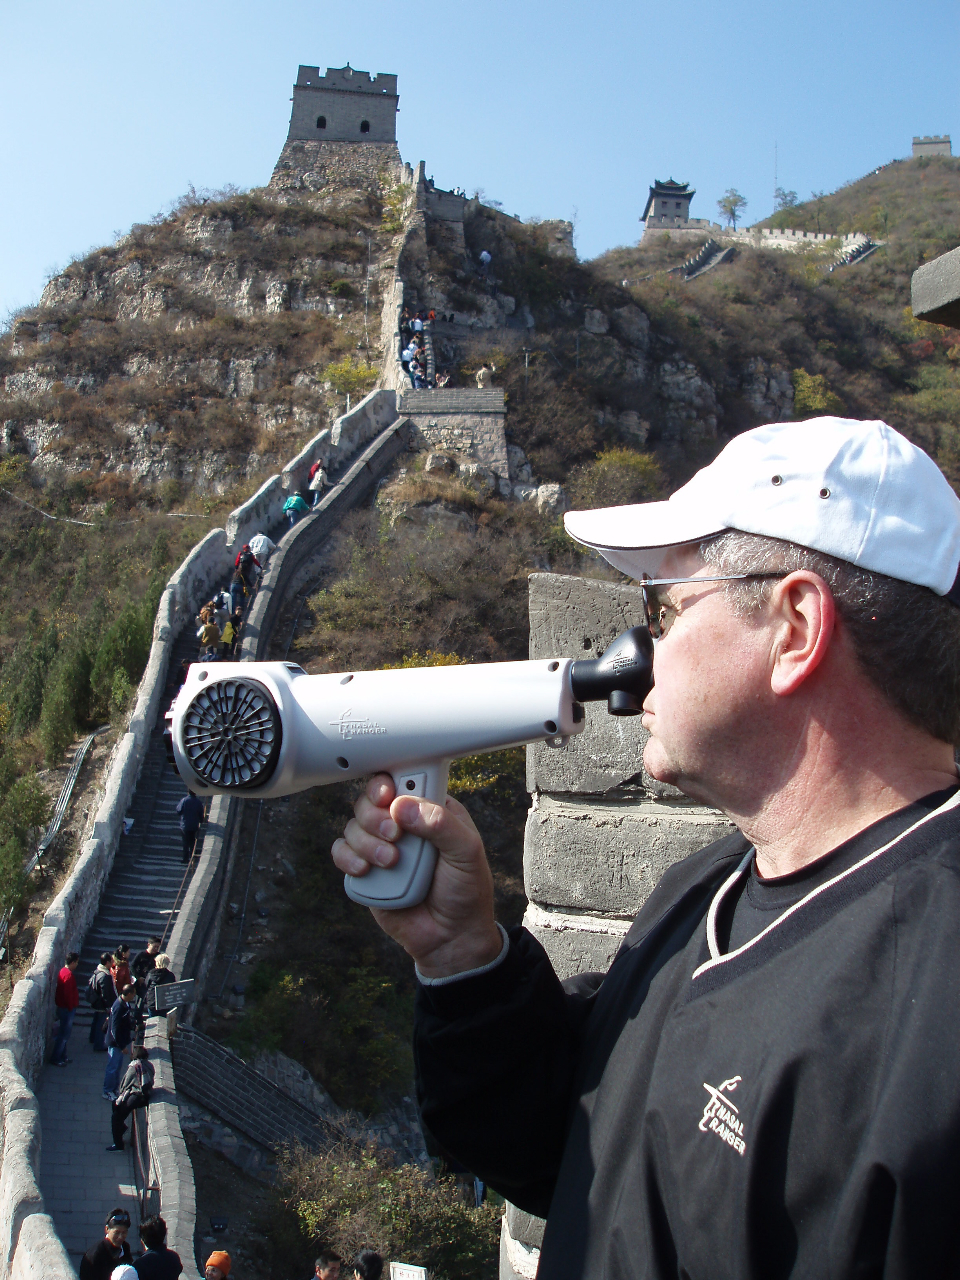 Chuck McGinley of St. Croix Sensory uses the Nasal Ranger at the Great Wall of China.